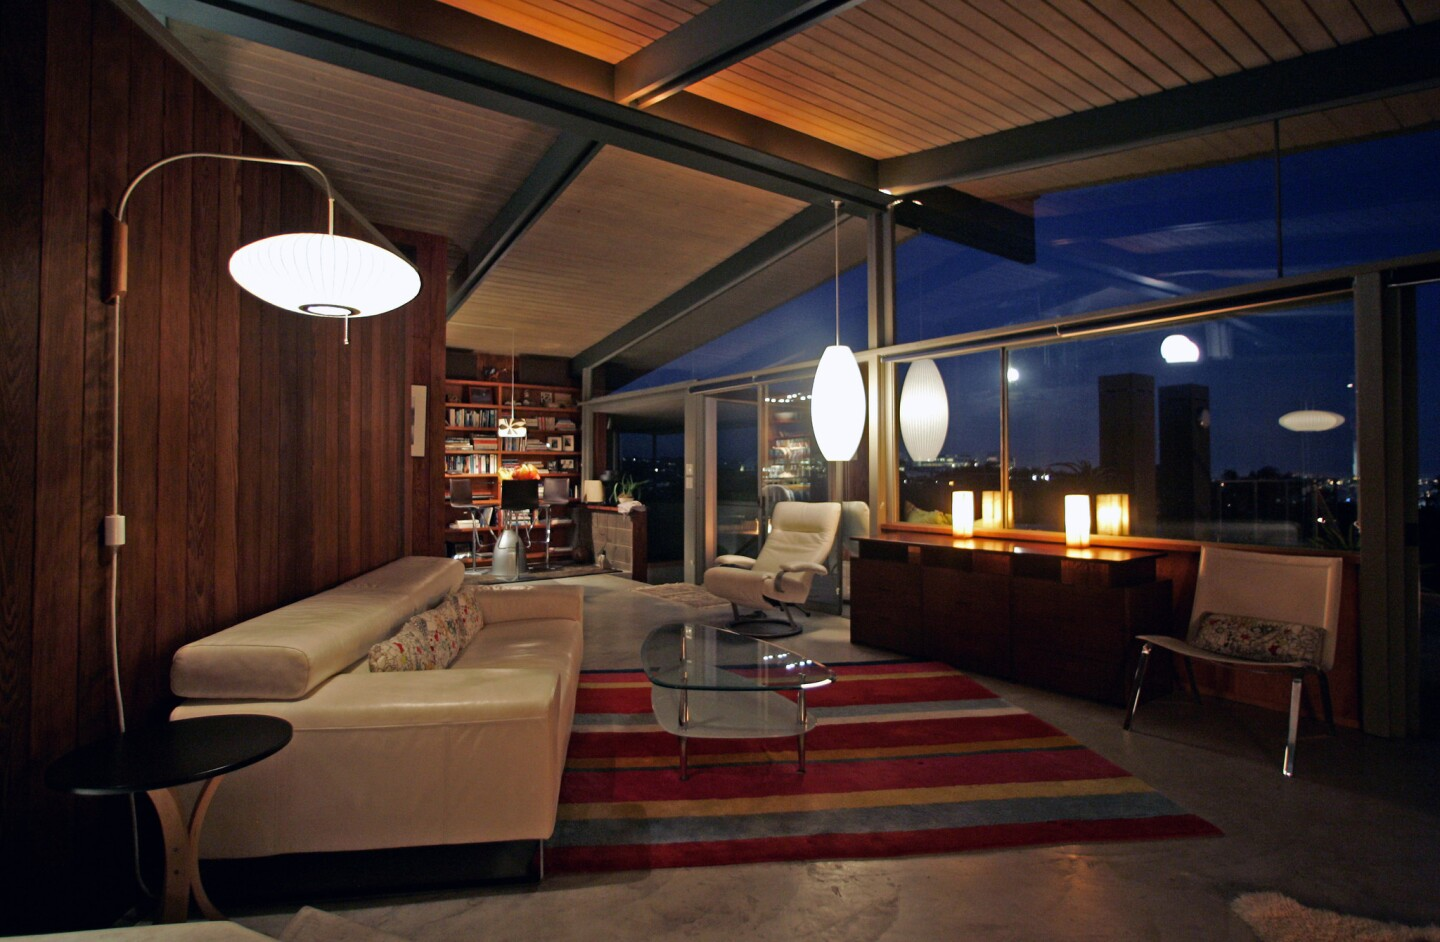 The interior of a restored midcentury home in the historic Crestwood Hills neighborhood of Brentwood.